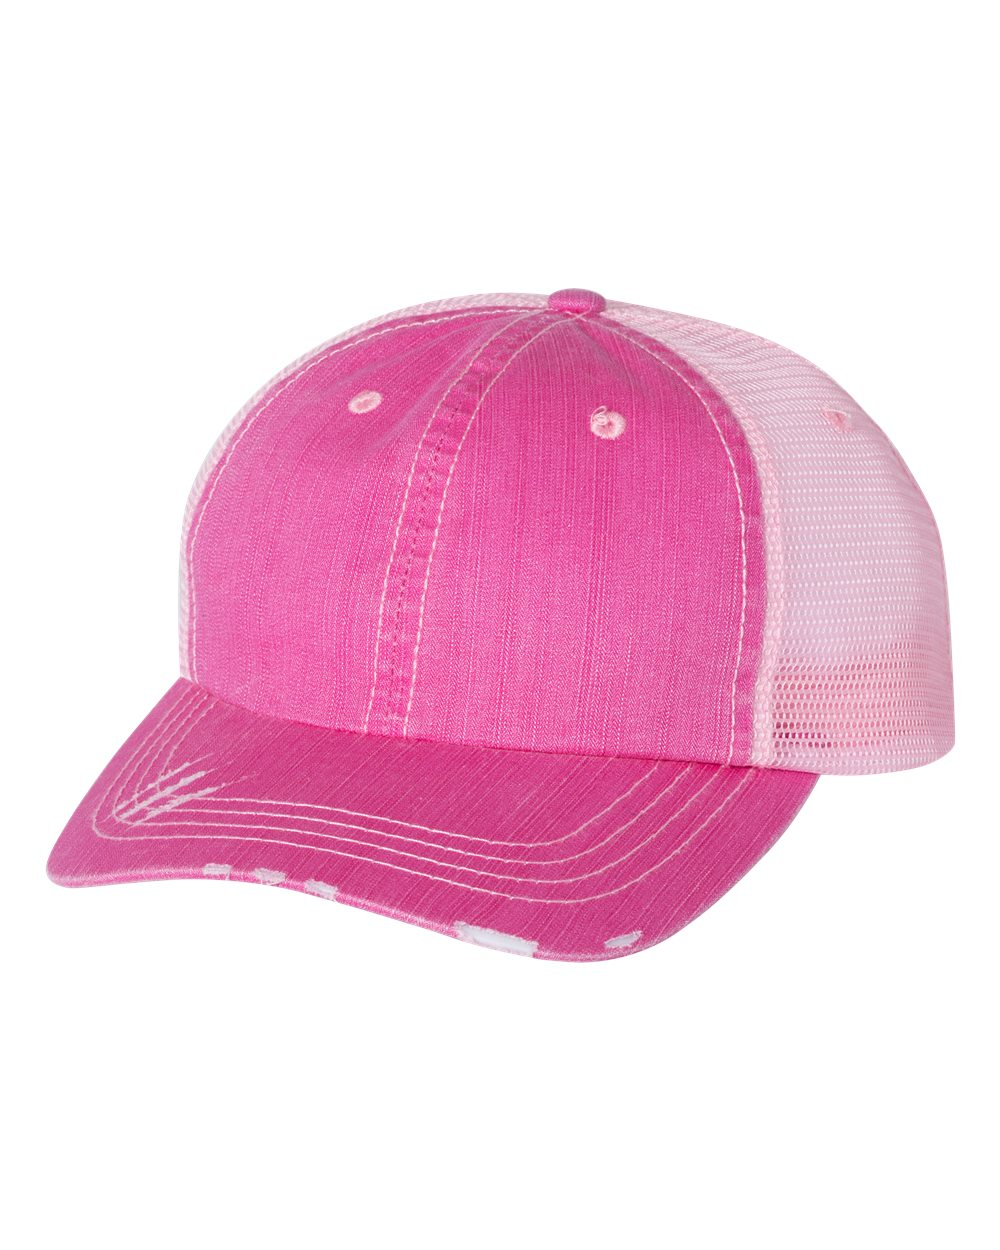 PINK TRUCKER CAP WITH FMWIB LOGO ON PATCH